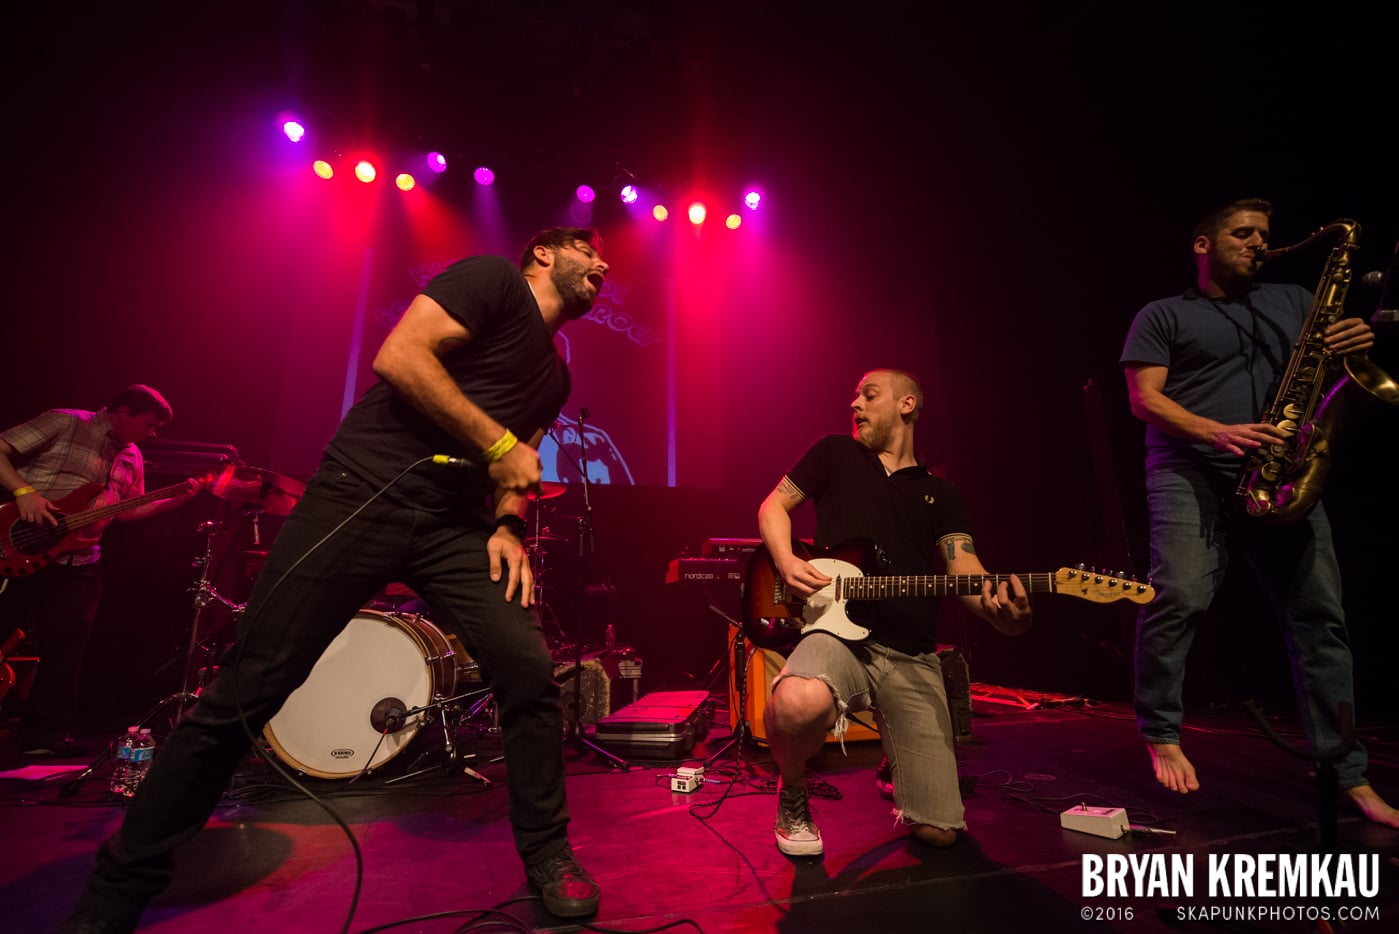 High School Football Heroes @ Gramercy Theatre, NYC - 10.6.16 (15)